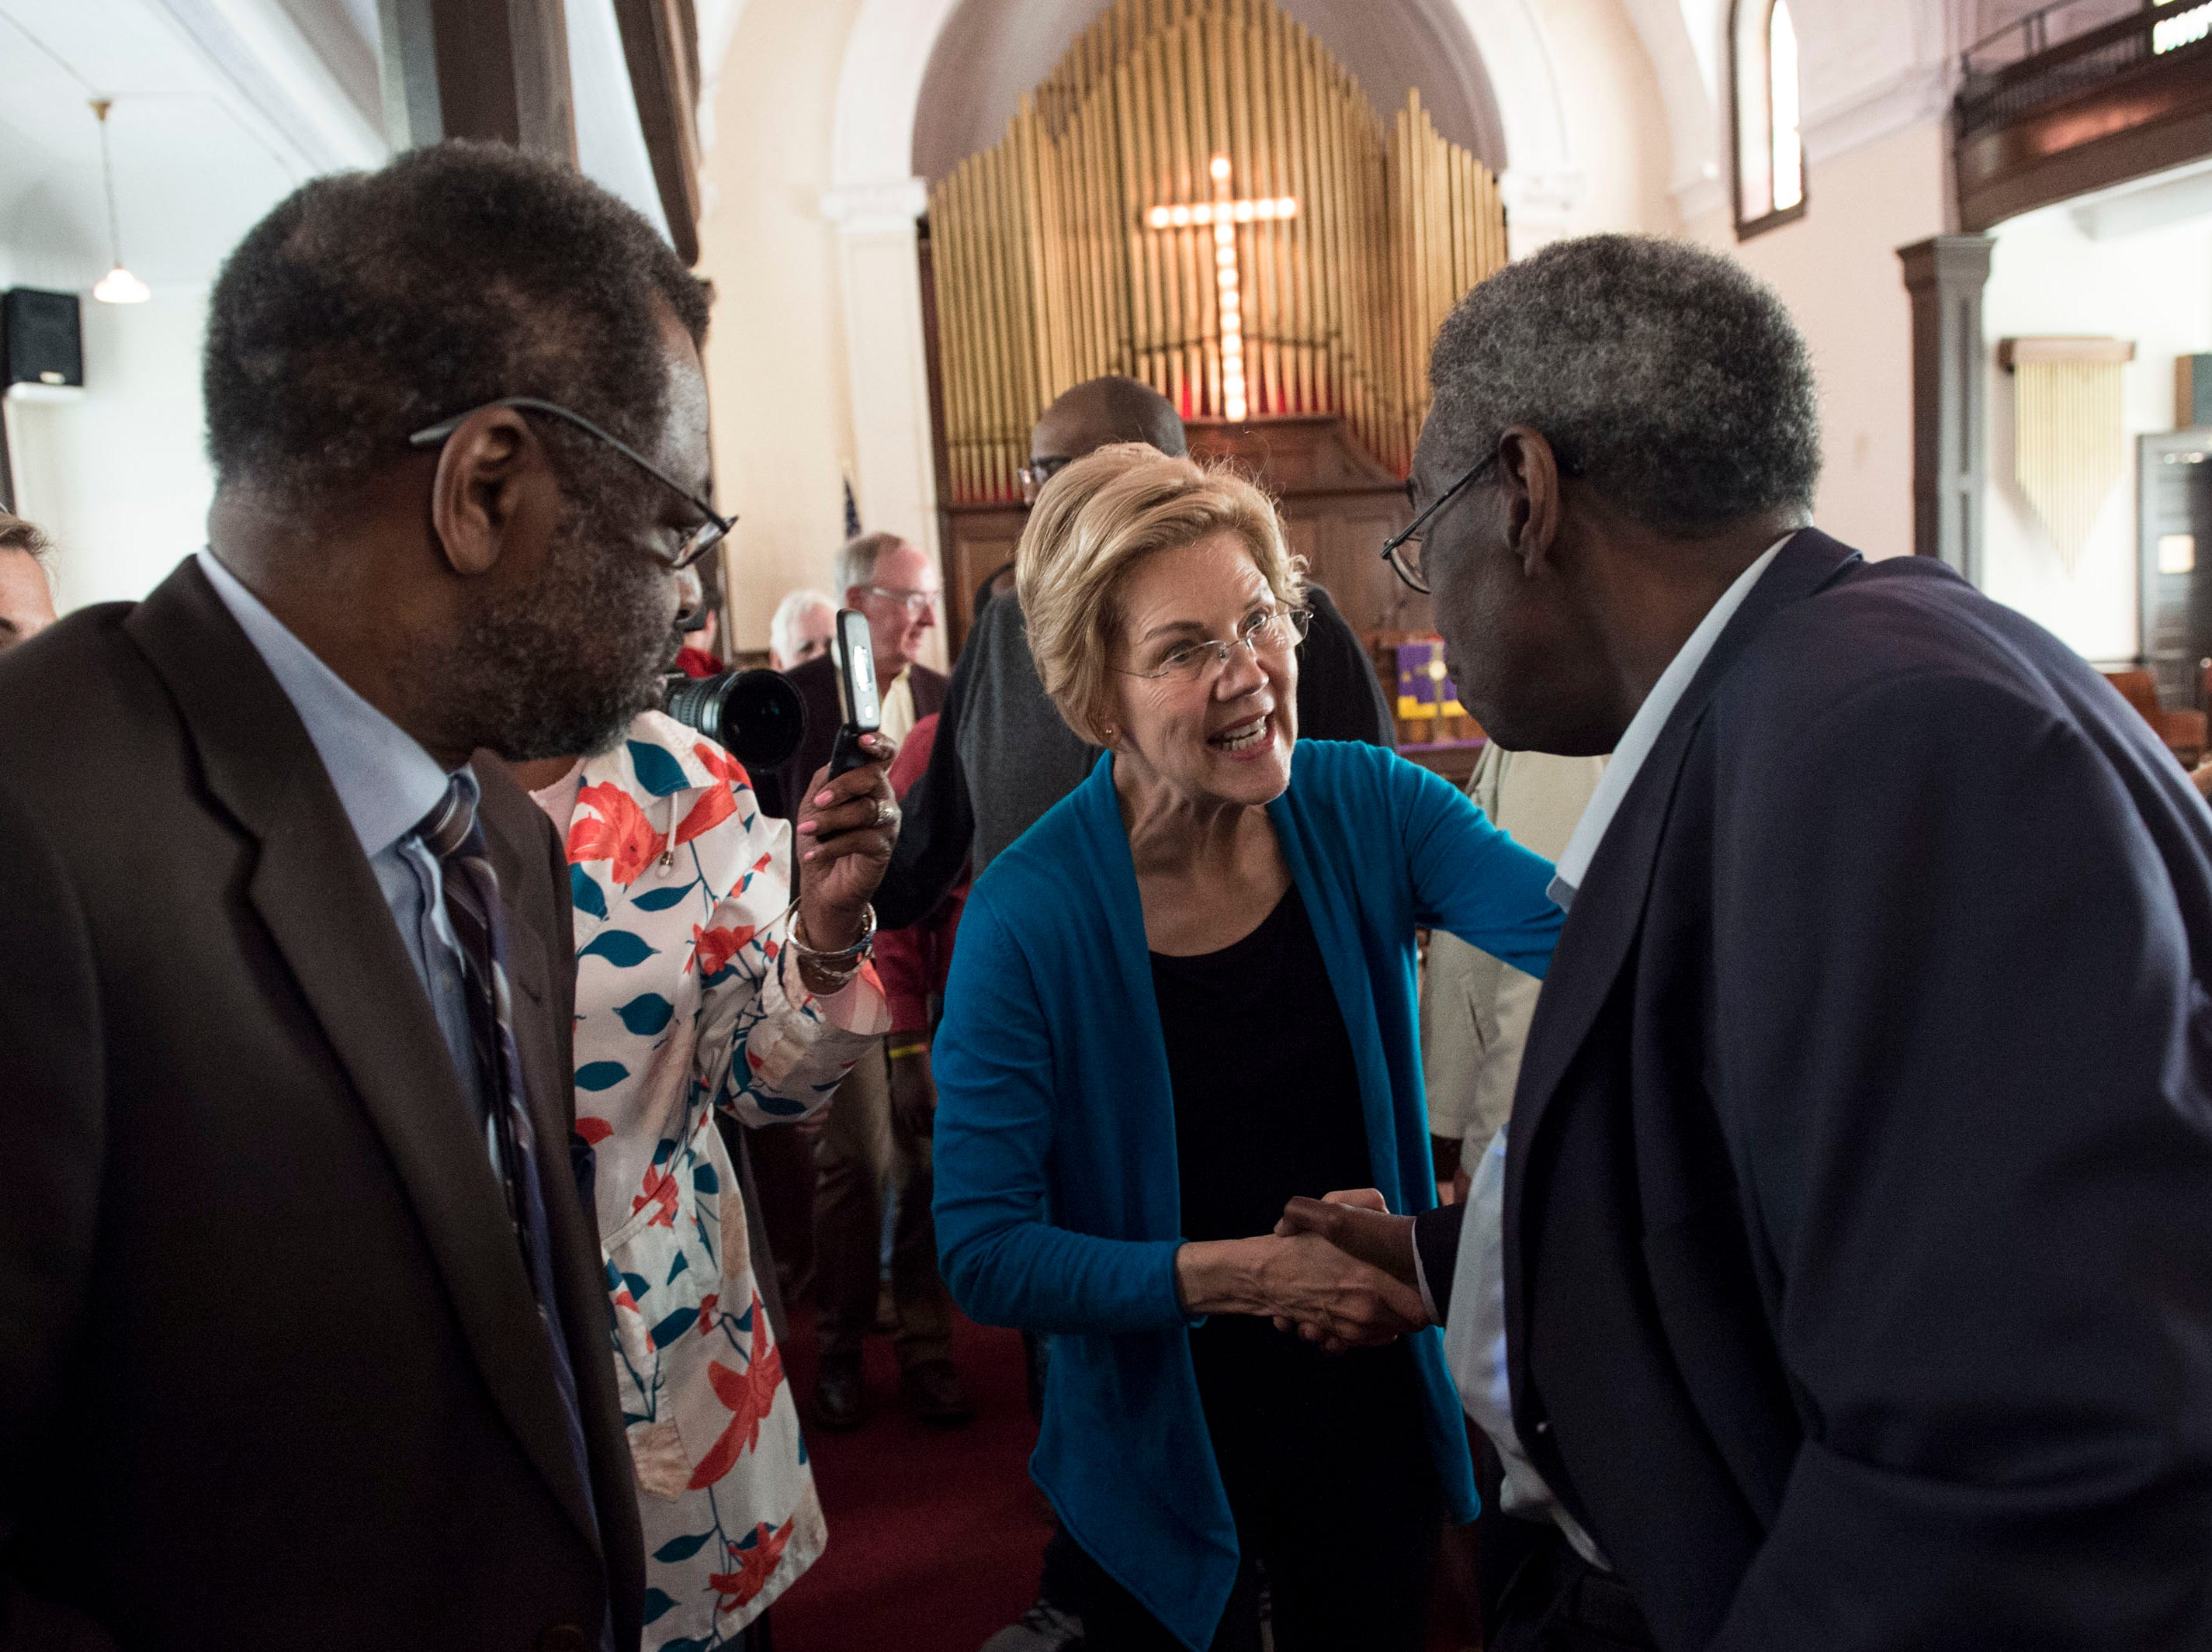 Sen. Elizabeth Warren shakes hands with Alabama State Sen. Henry Sanders at Brown Chapel AME Church in Selma, Ala., on Tuesday, March 19, 2019.